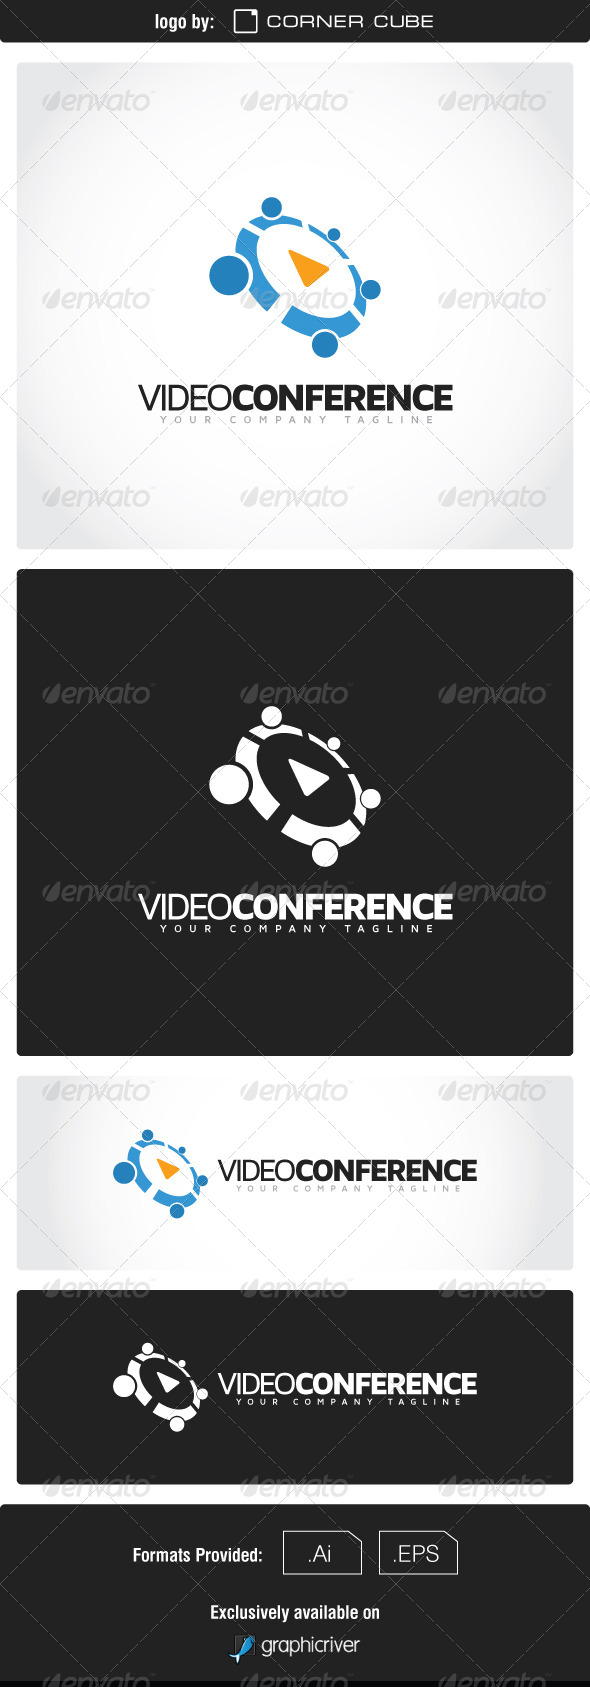 GraphicRiver Video Conference Logo 7550348